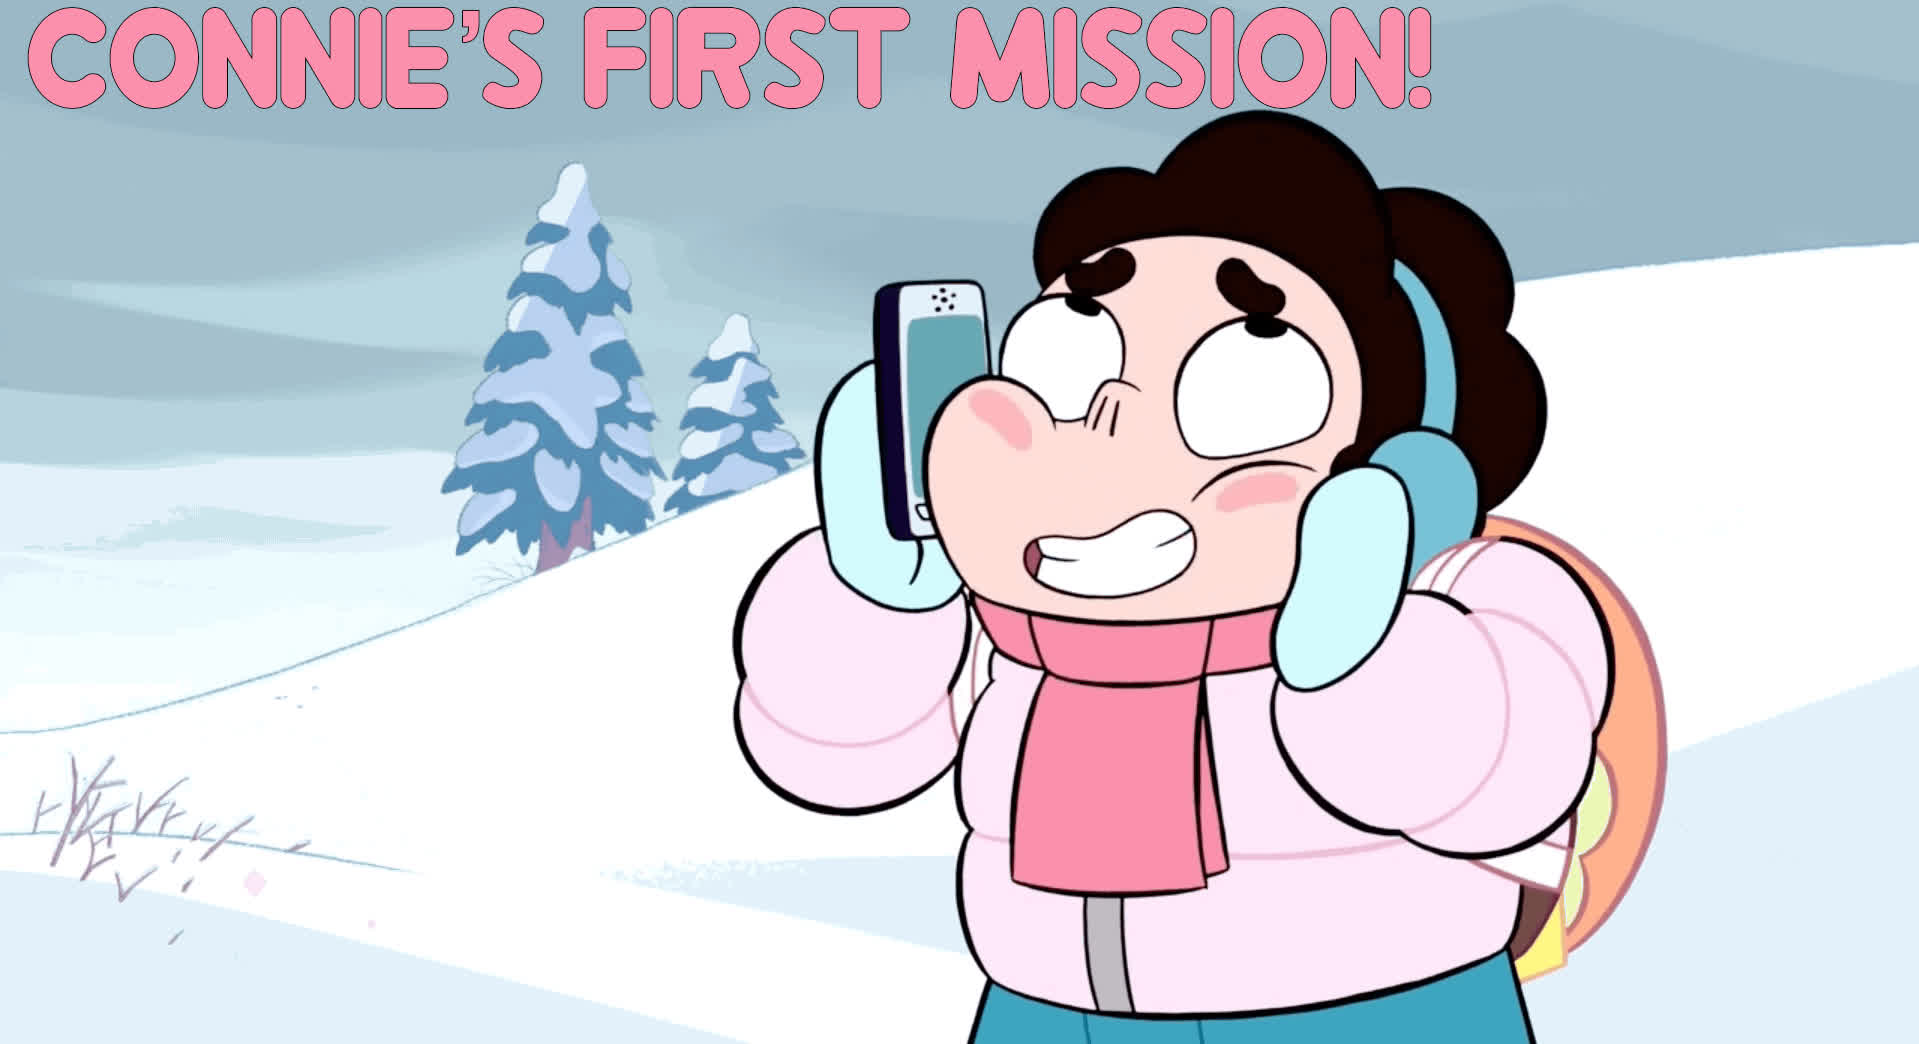 stevenuniverse, Connies first mission GIFs